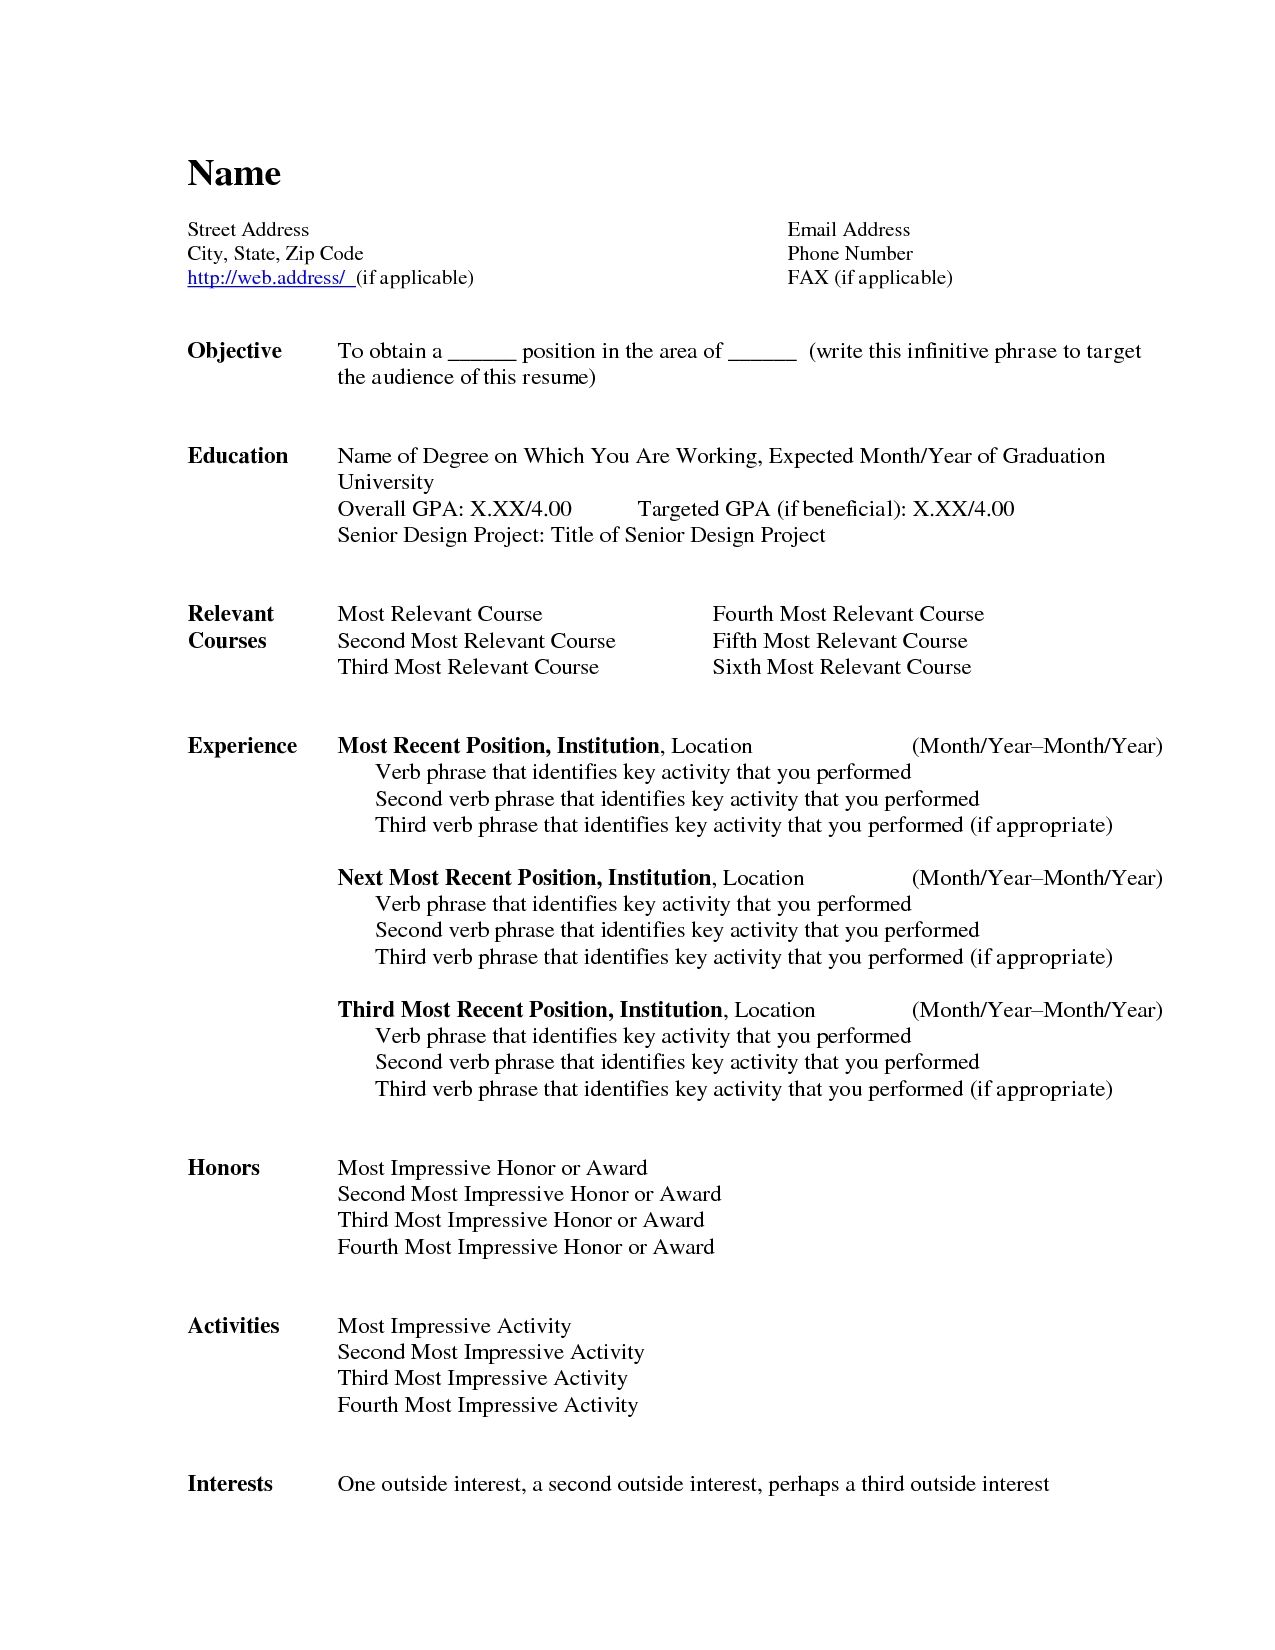 Photo ms word resume format images the ms word resume format photo ms word resume format images the ms word resume format yelopaper Images